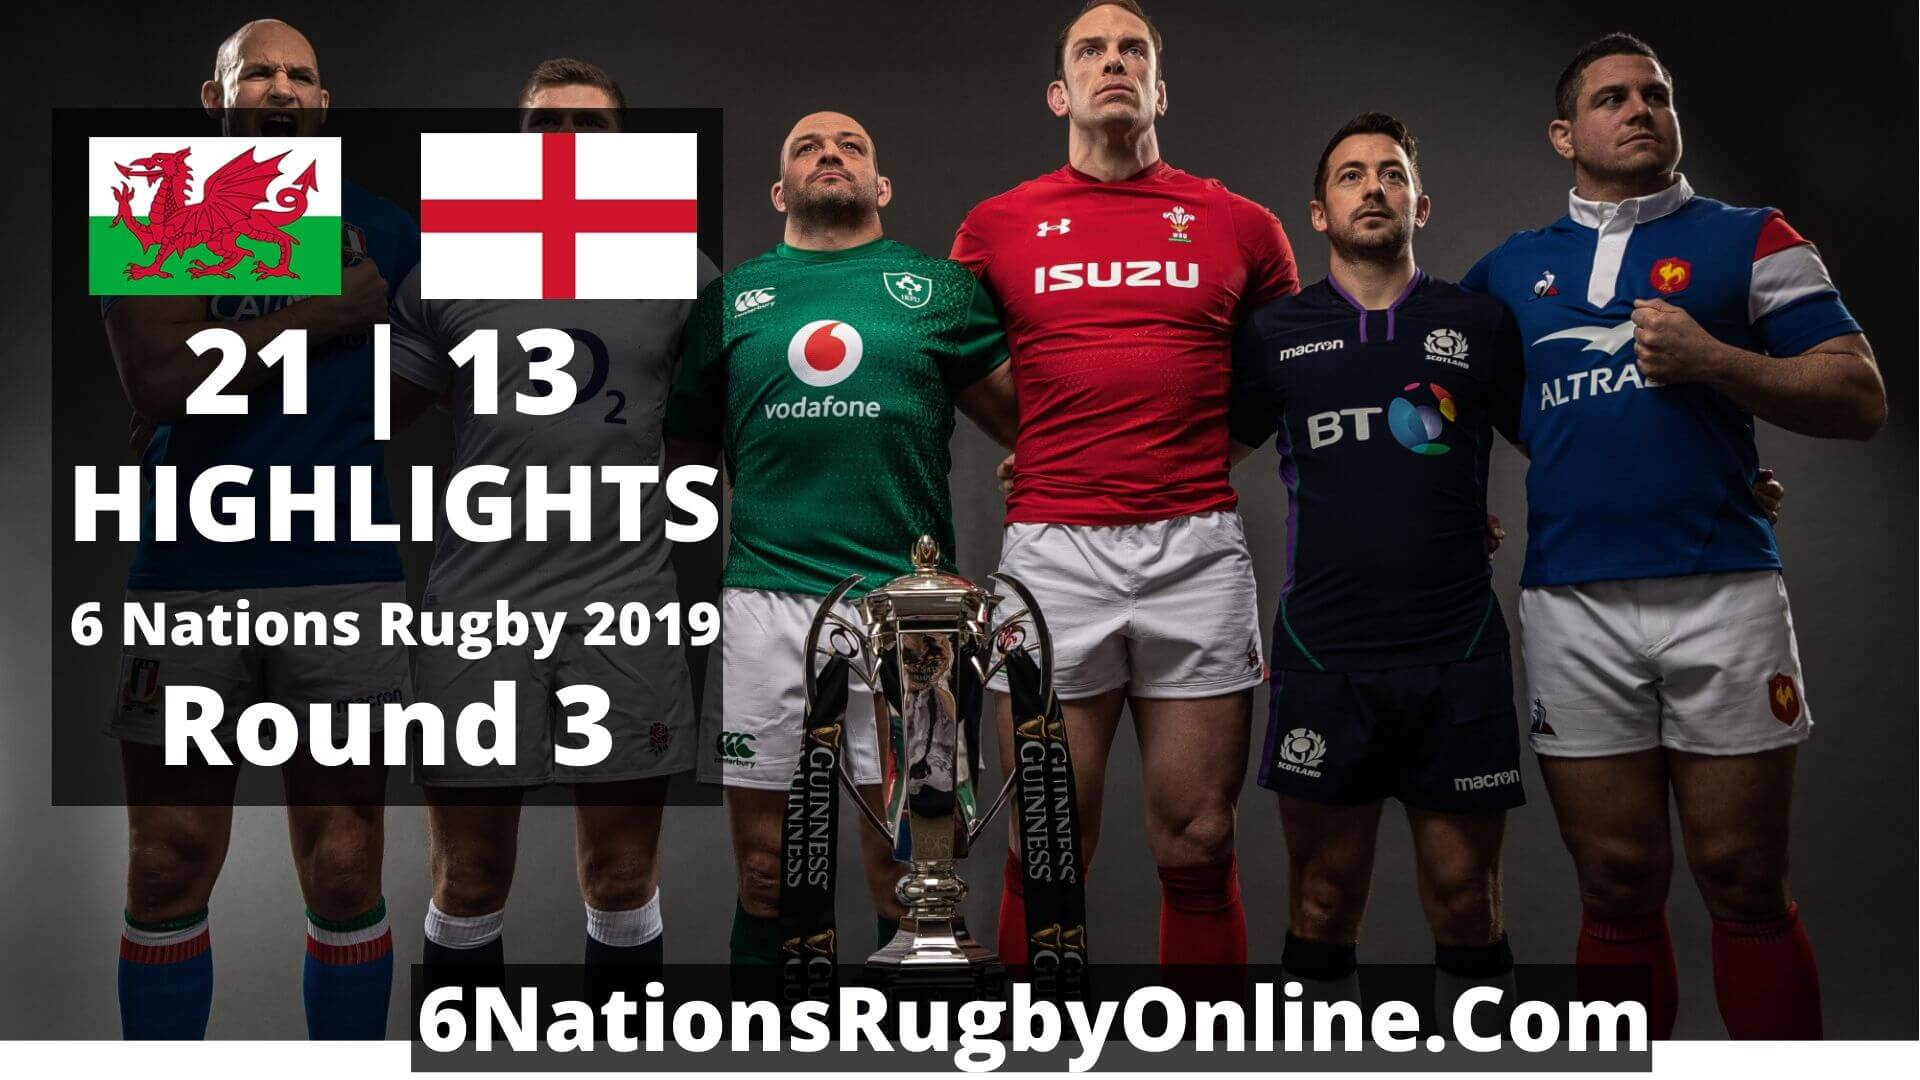 Wales Vs England Highlights 2019 Six Nations Rugby Round 3